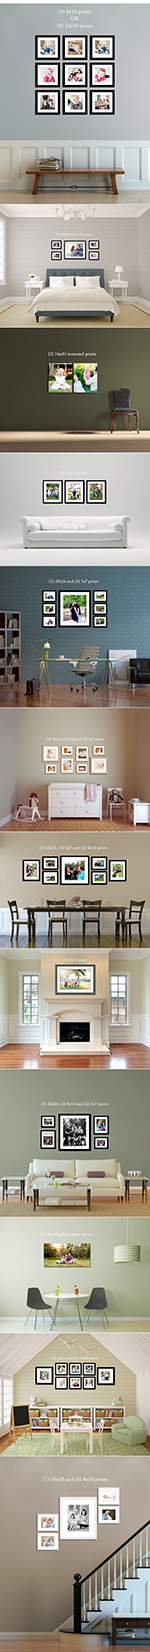 How To Hang Photos or Picture Frames